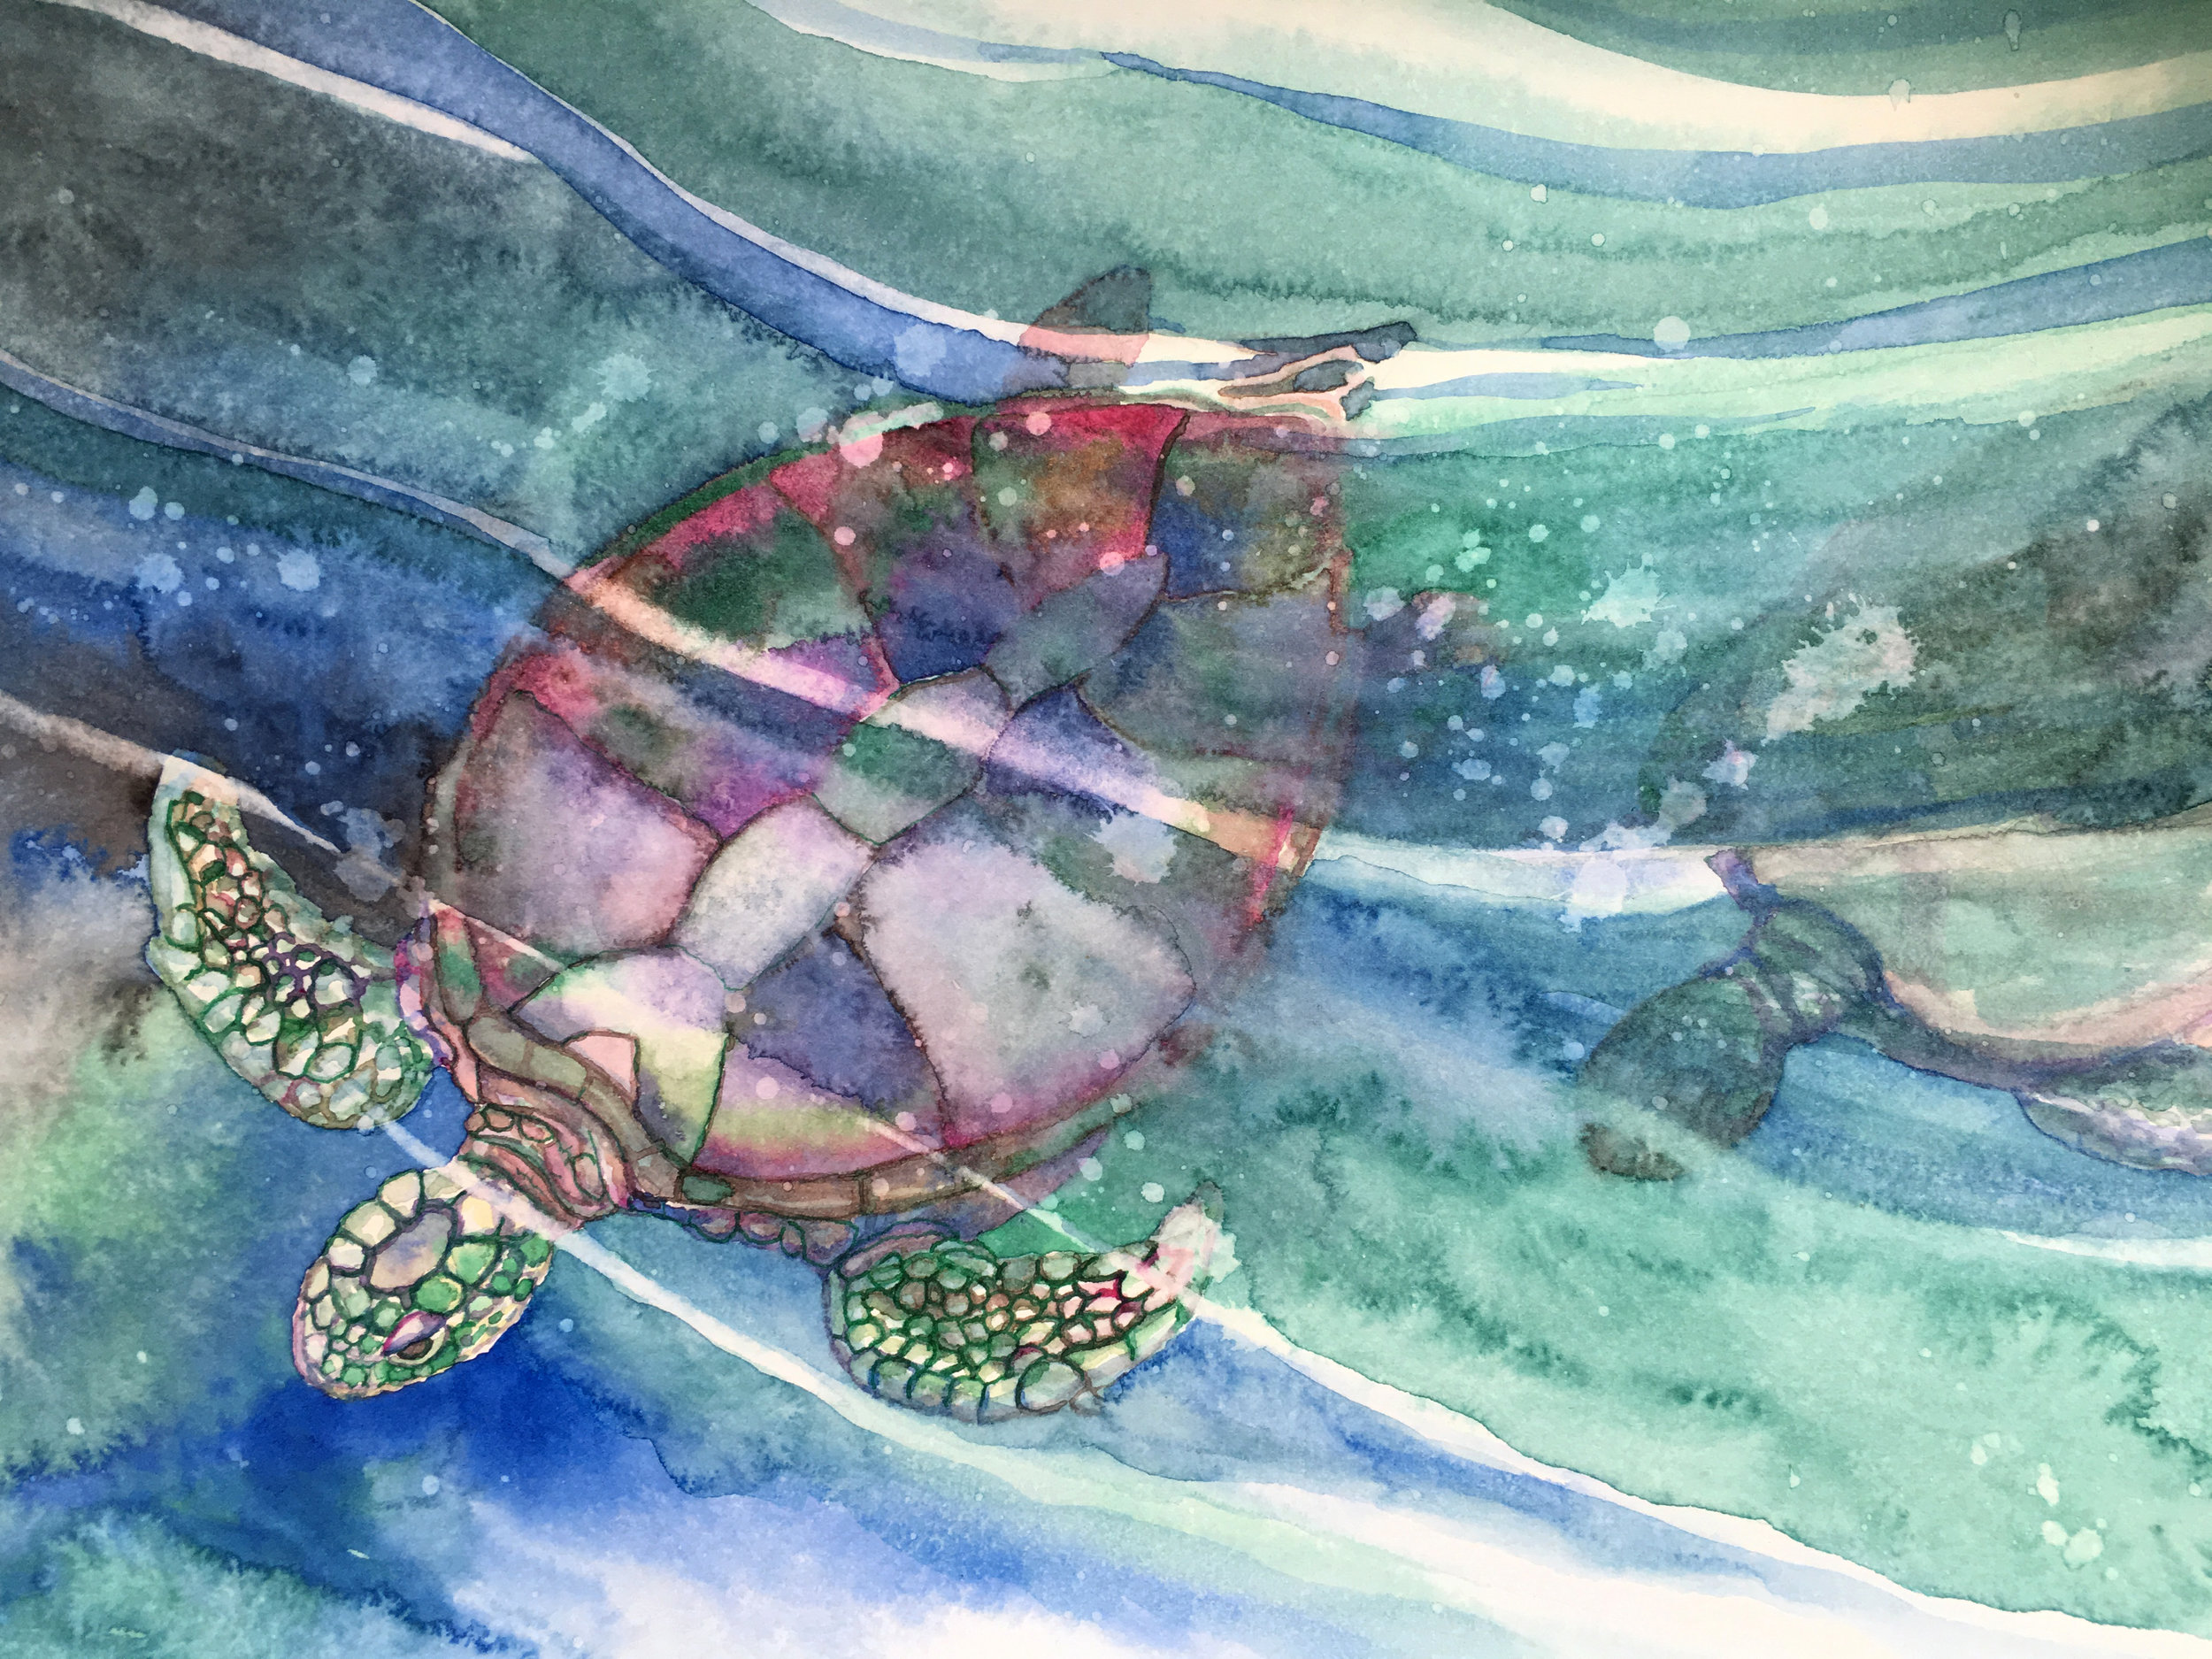 ©Gayle Mahoney- Marabu Graphix Aqua Watercolor Inks on Arches hot pressed watercolor paper